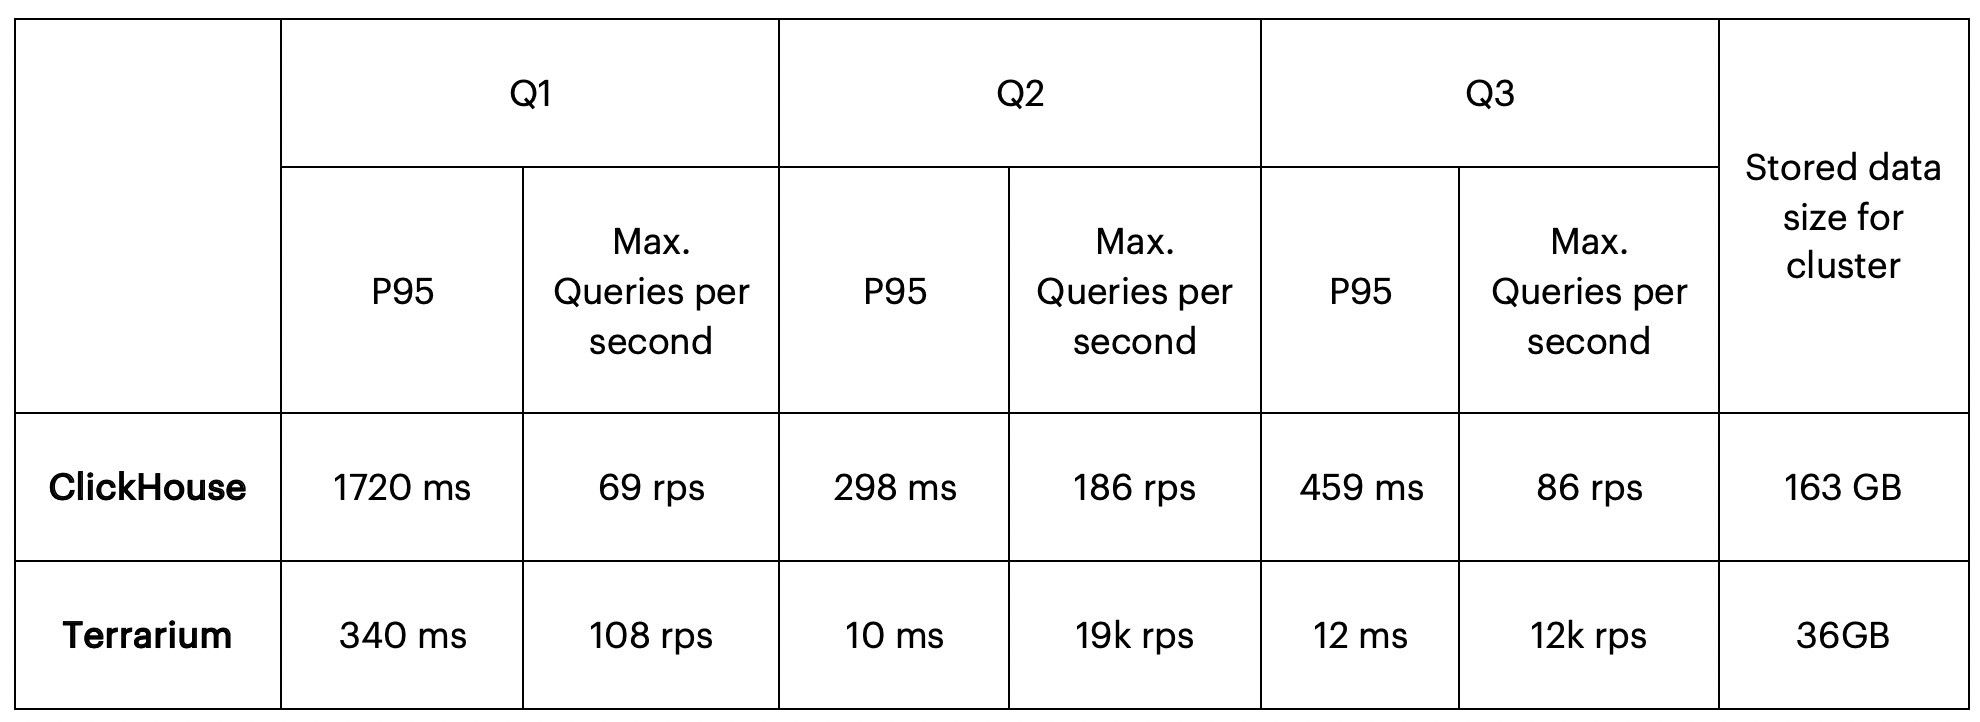 Table 2 presenting query performance for a cluster with production load